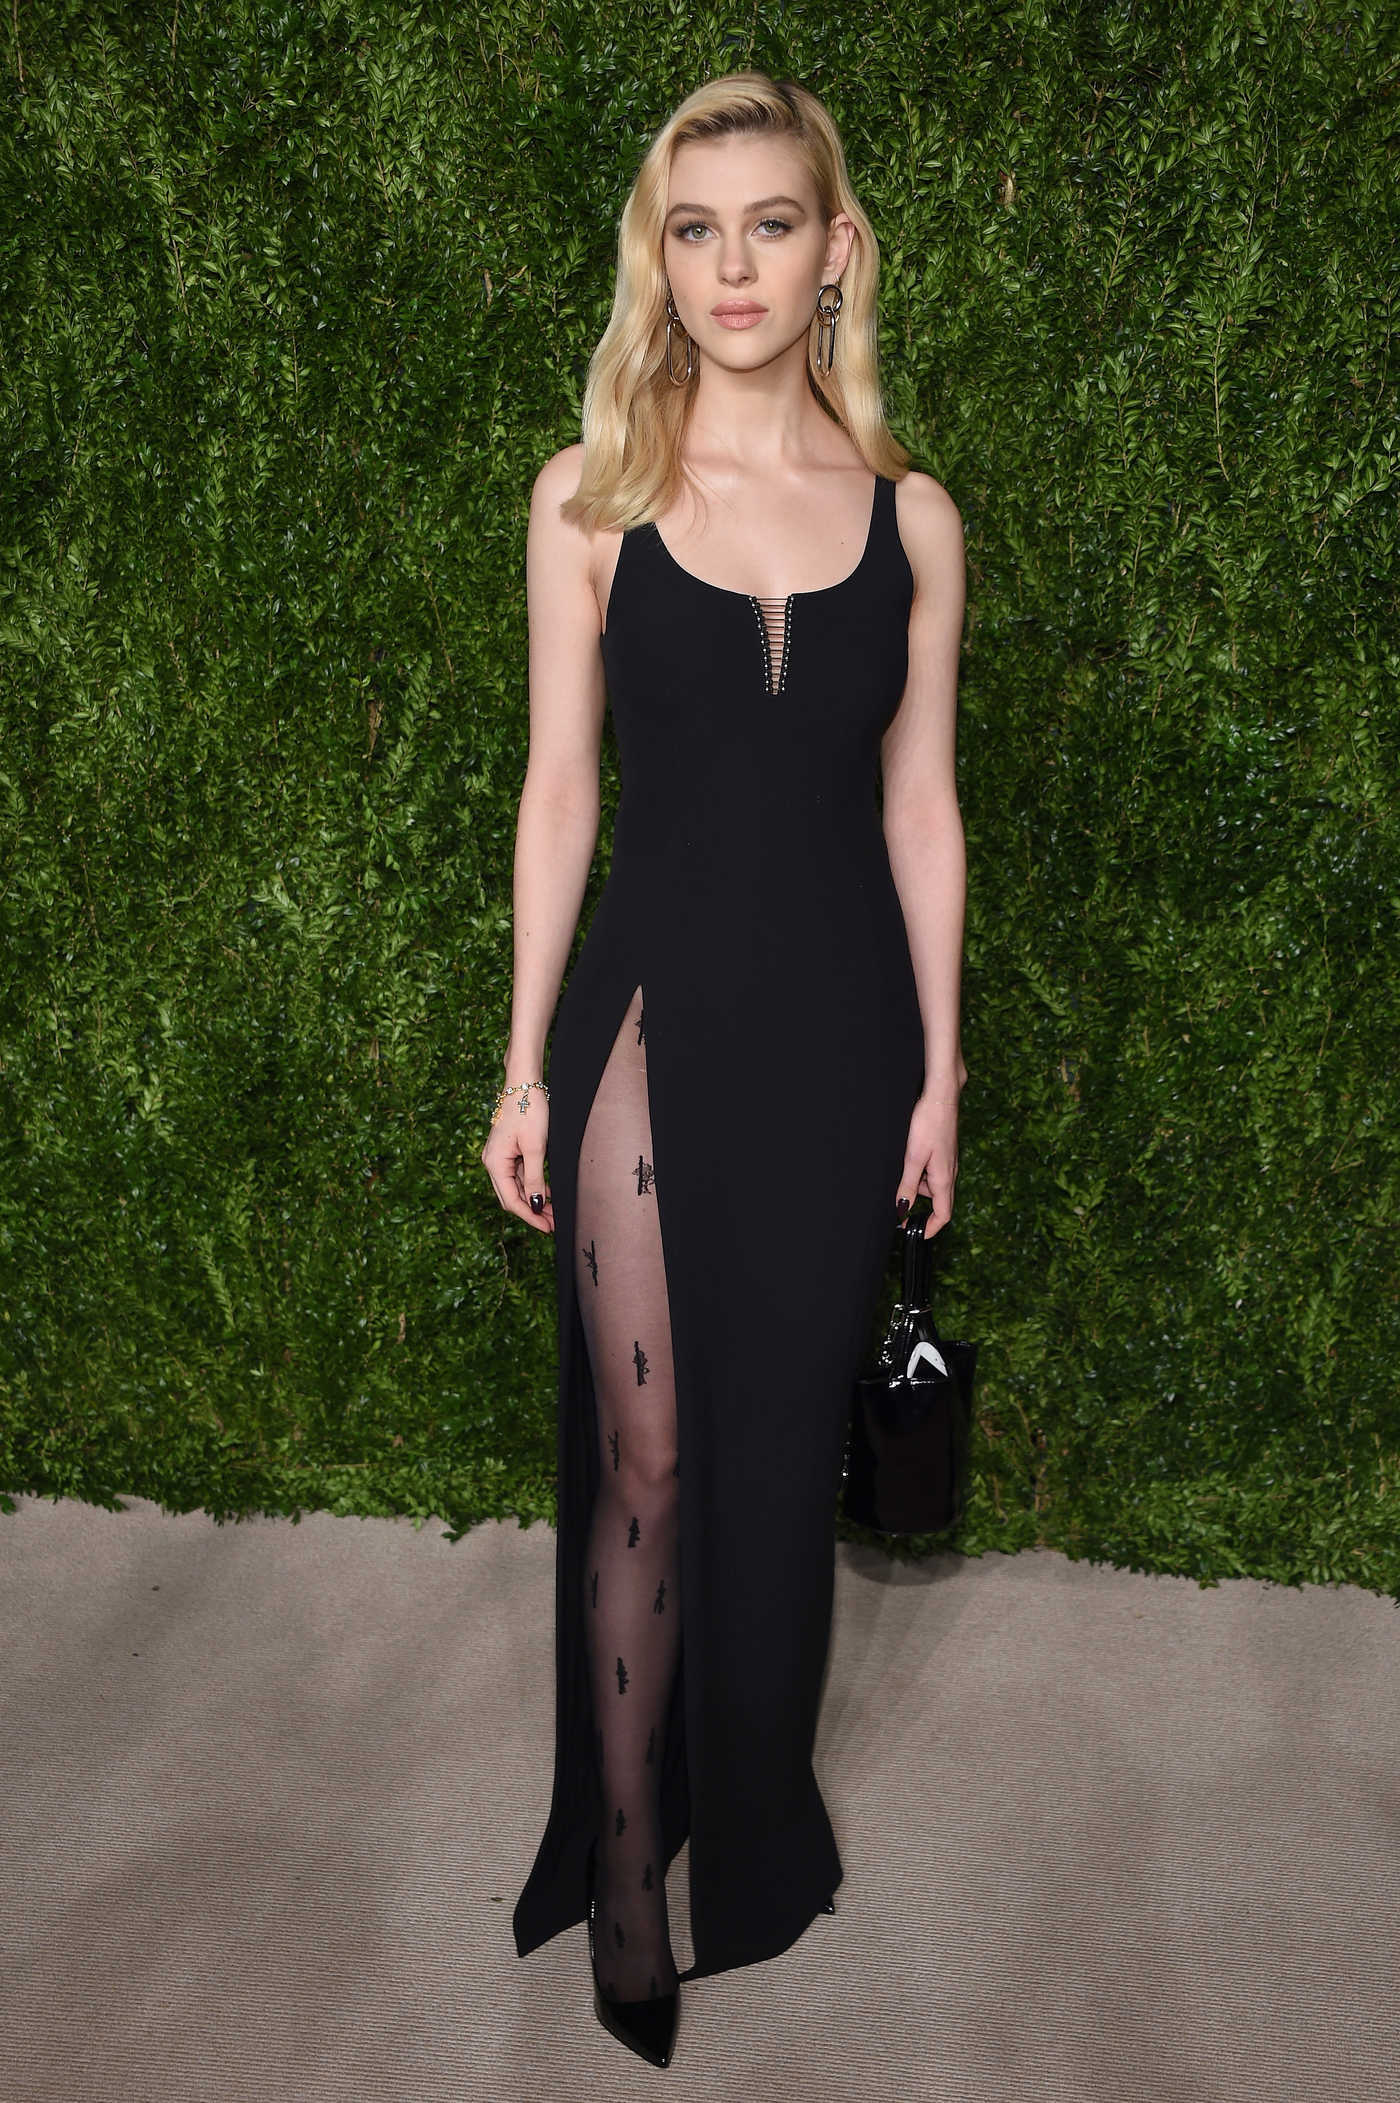 Nicola Peltz at the 13th Annual CFDA/Vogue Fashion Fund Awards in New York City 11/07/2016